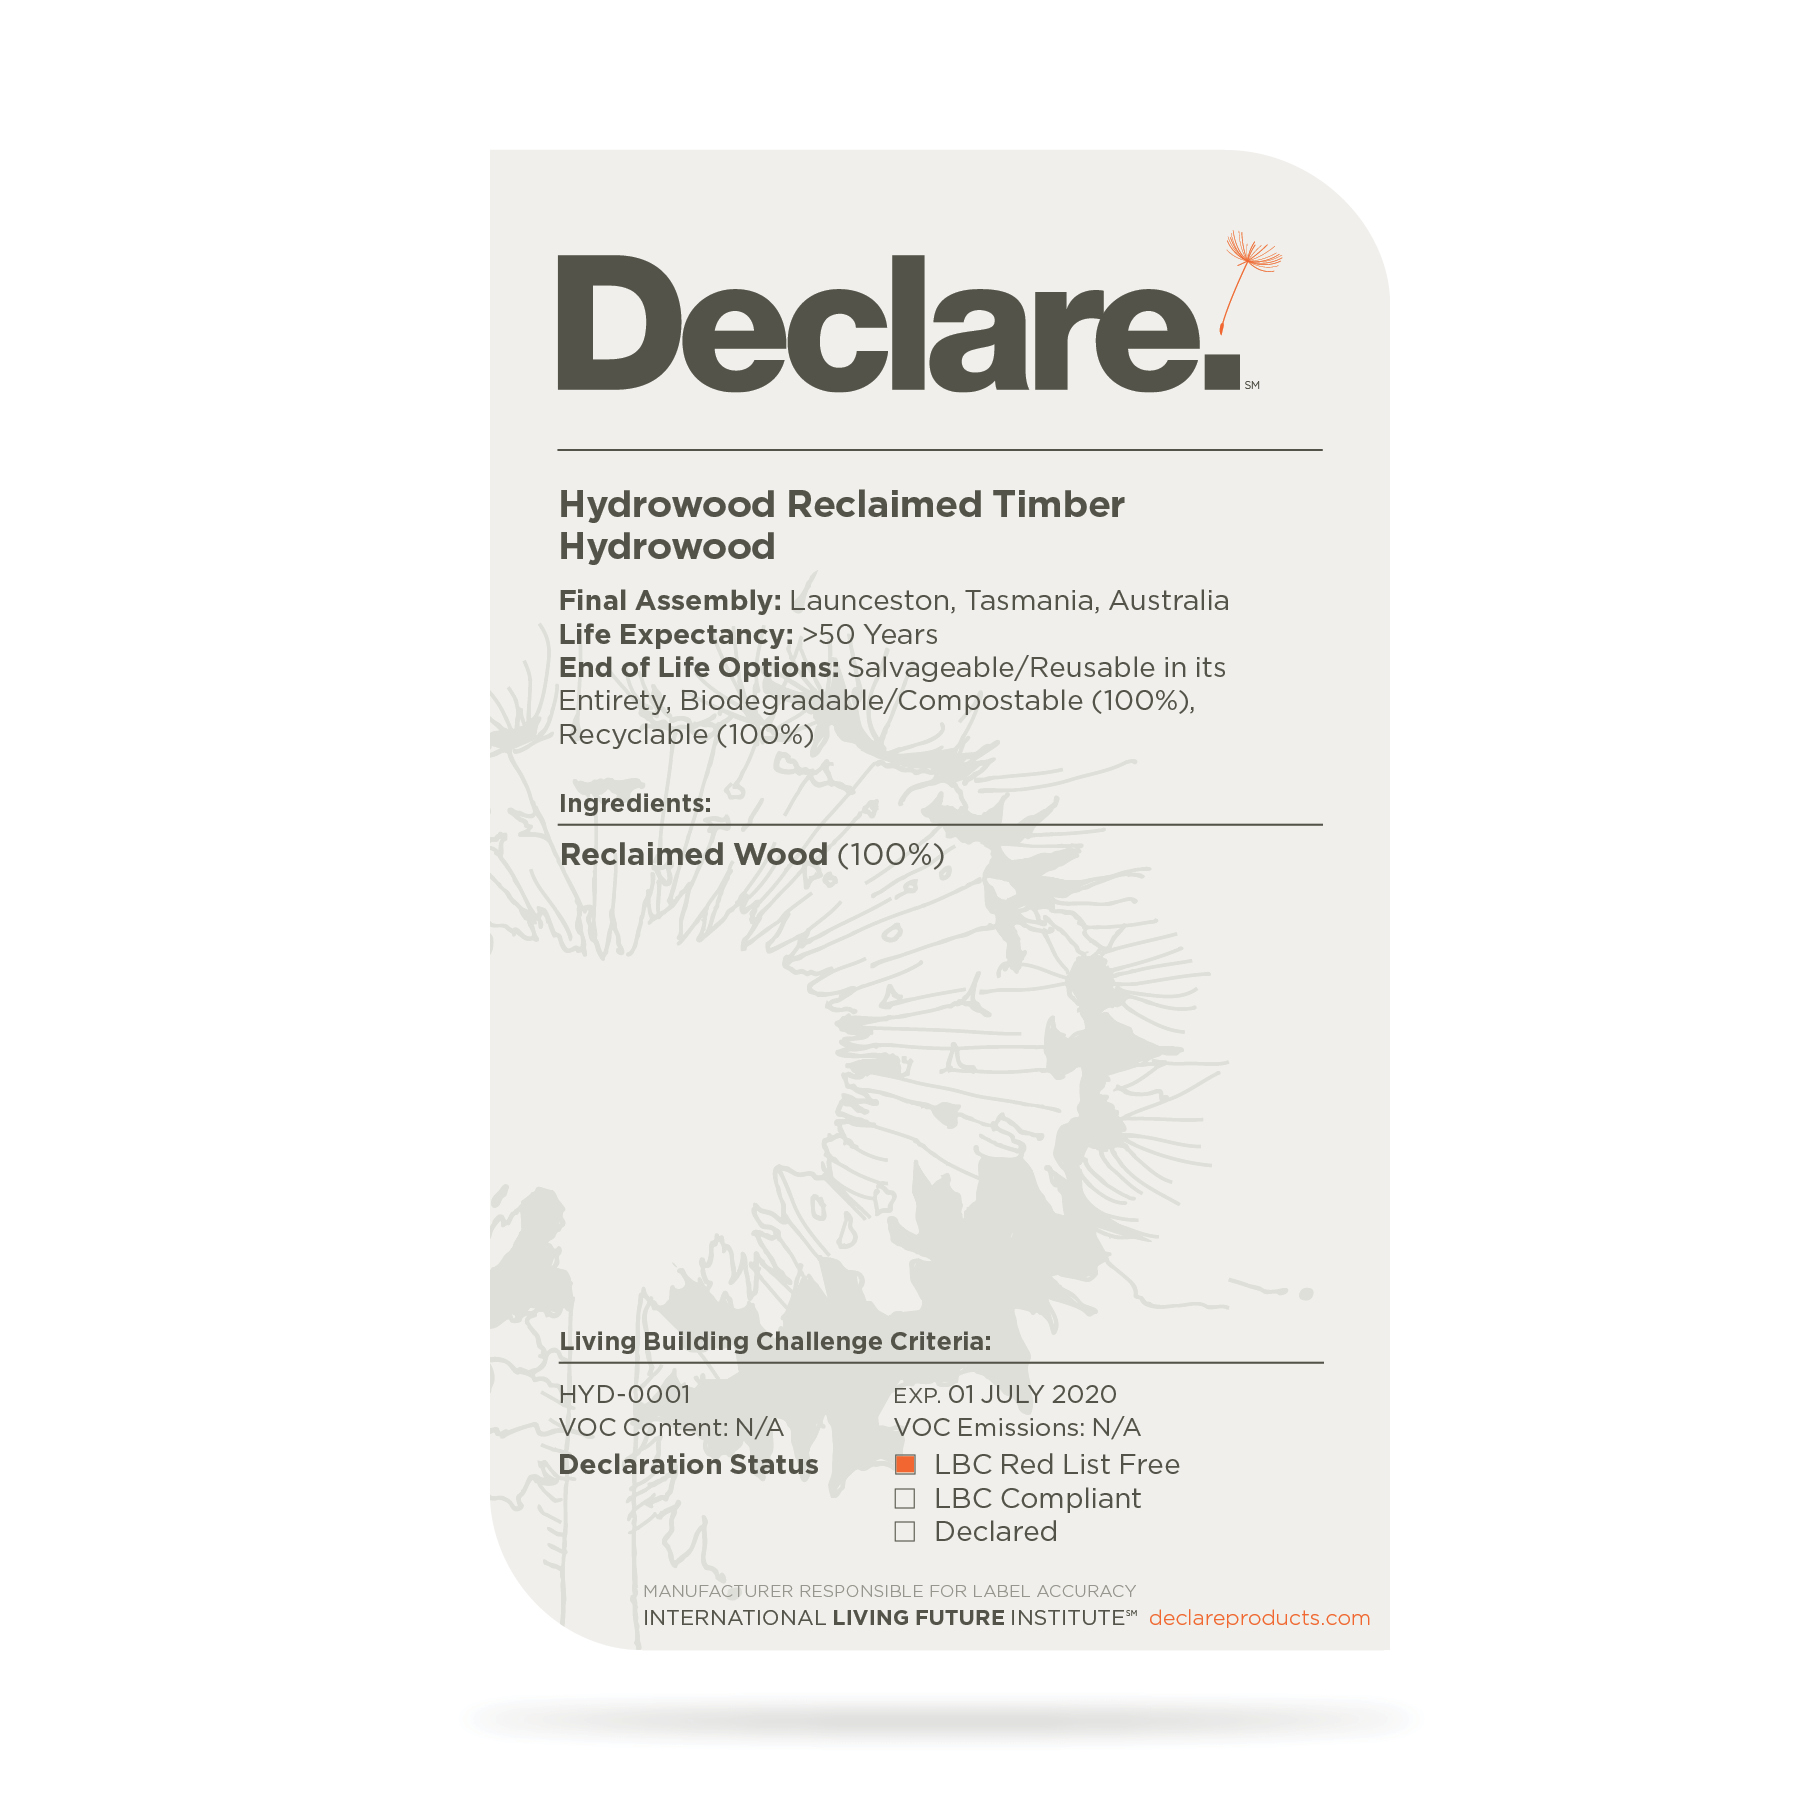 The Hydrowood Declare Label